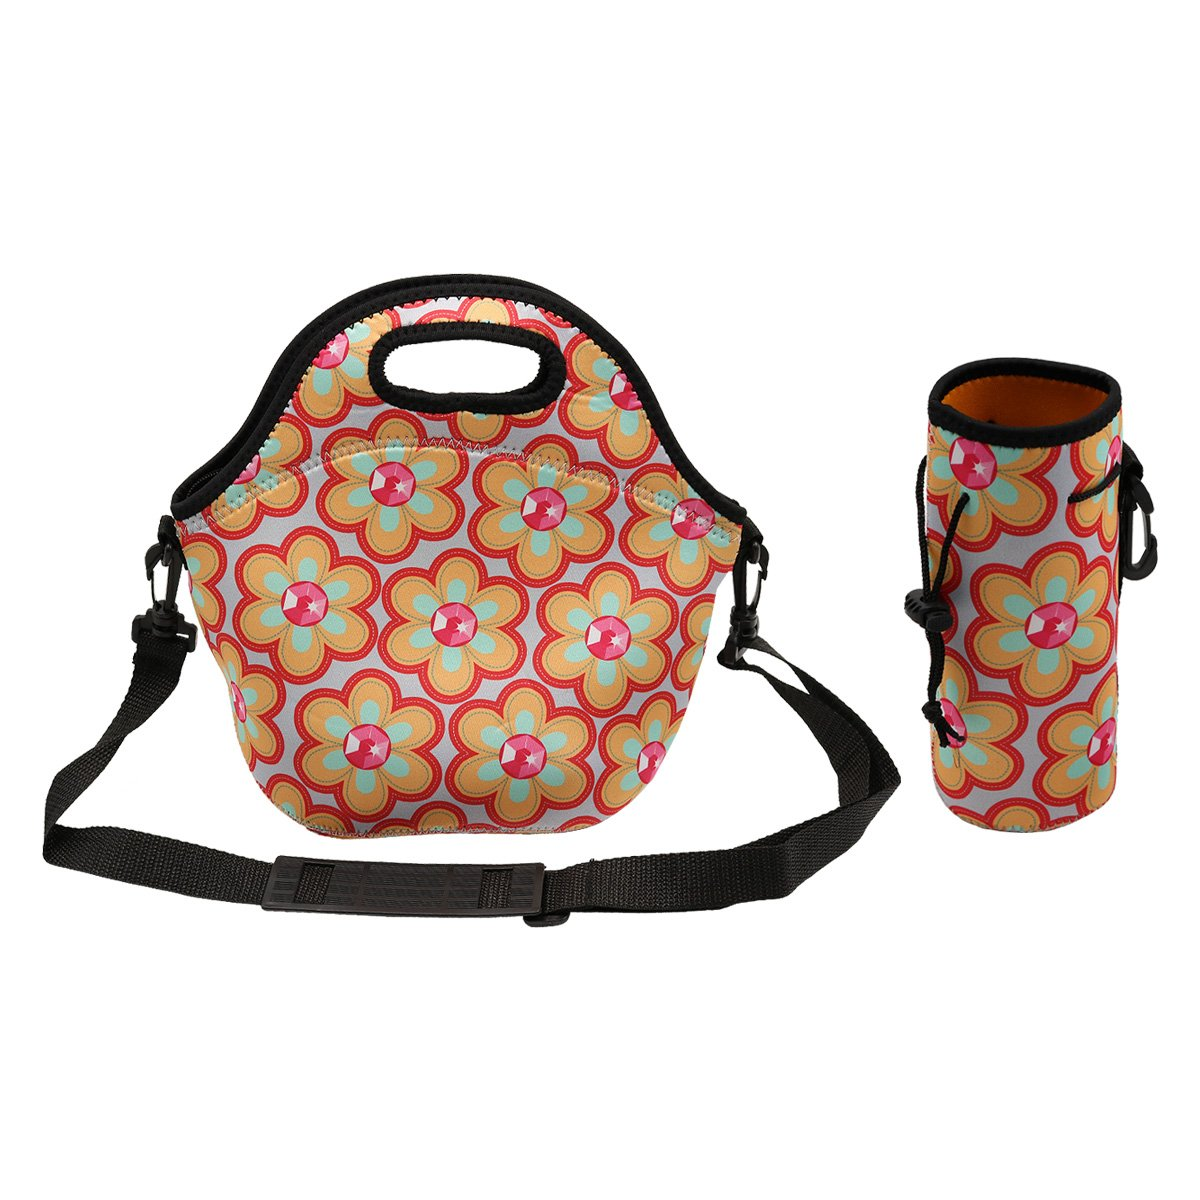 Amerzam Neoprene Lunch Bags/Lunch Boxes, Waterproof Outdoor Travel Picnic Lunch Box Bag Tote with Zipper and Adjustable Crossbody Strap (Lunch Bag+Water Bottle Tote) Amerzam-LB-RR